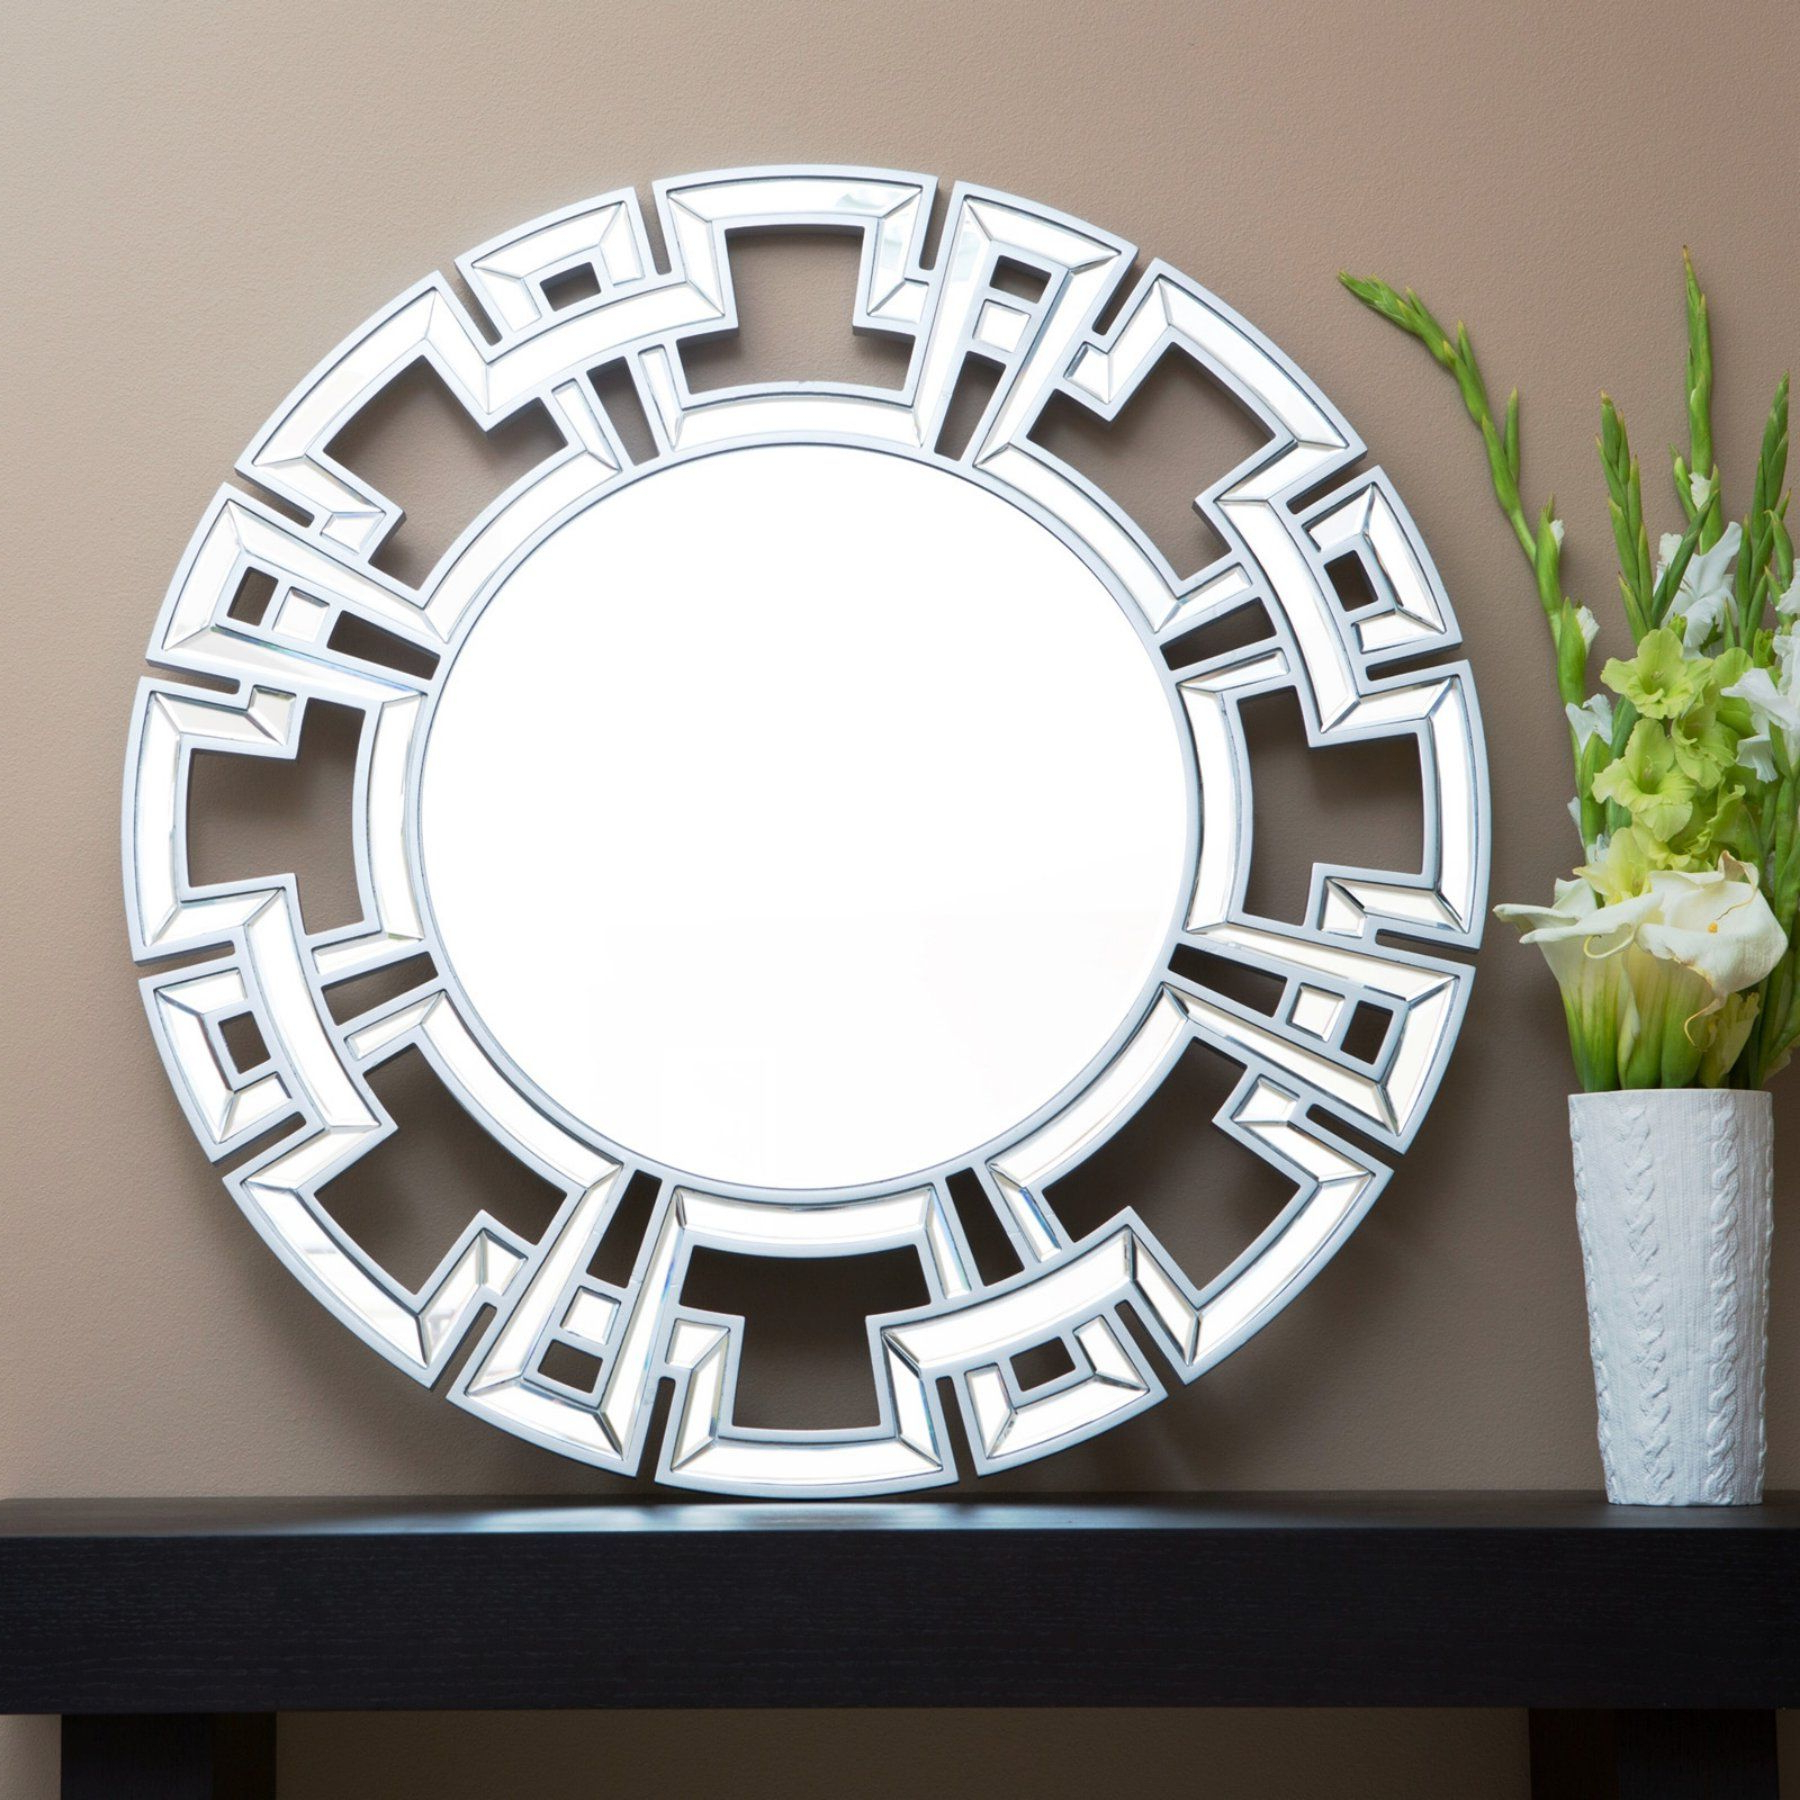 Tata Openwork Round Wall Mirrors For Best And Newest Abbyson Living Shiloh Round Wall Mirror – Tm Gc 8214 Mir Sil (View 7 of 20)